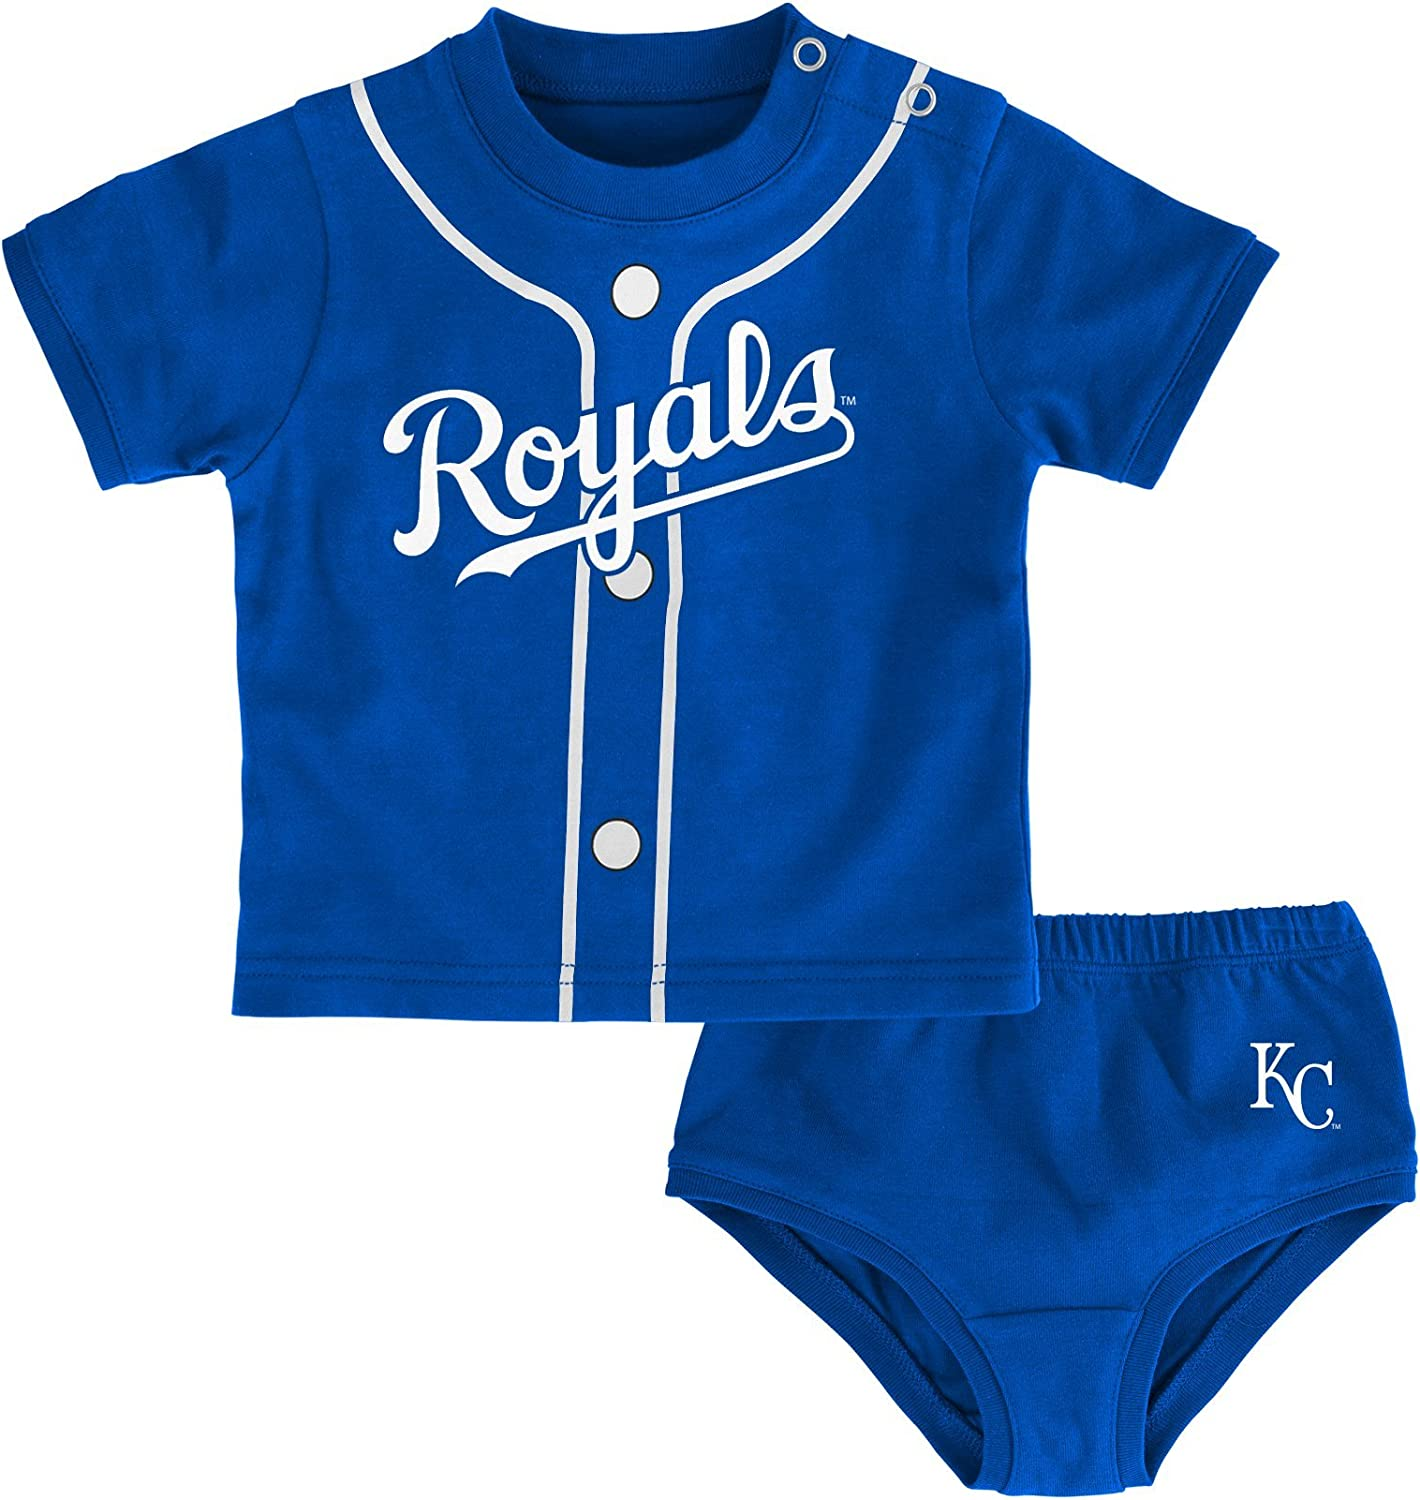 Outerstuff MLB Infant Boys Little Player Onesie and Diaper Set